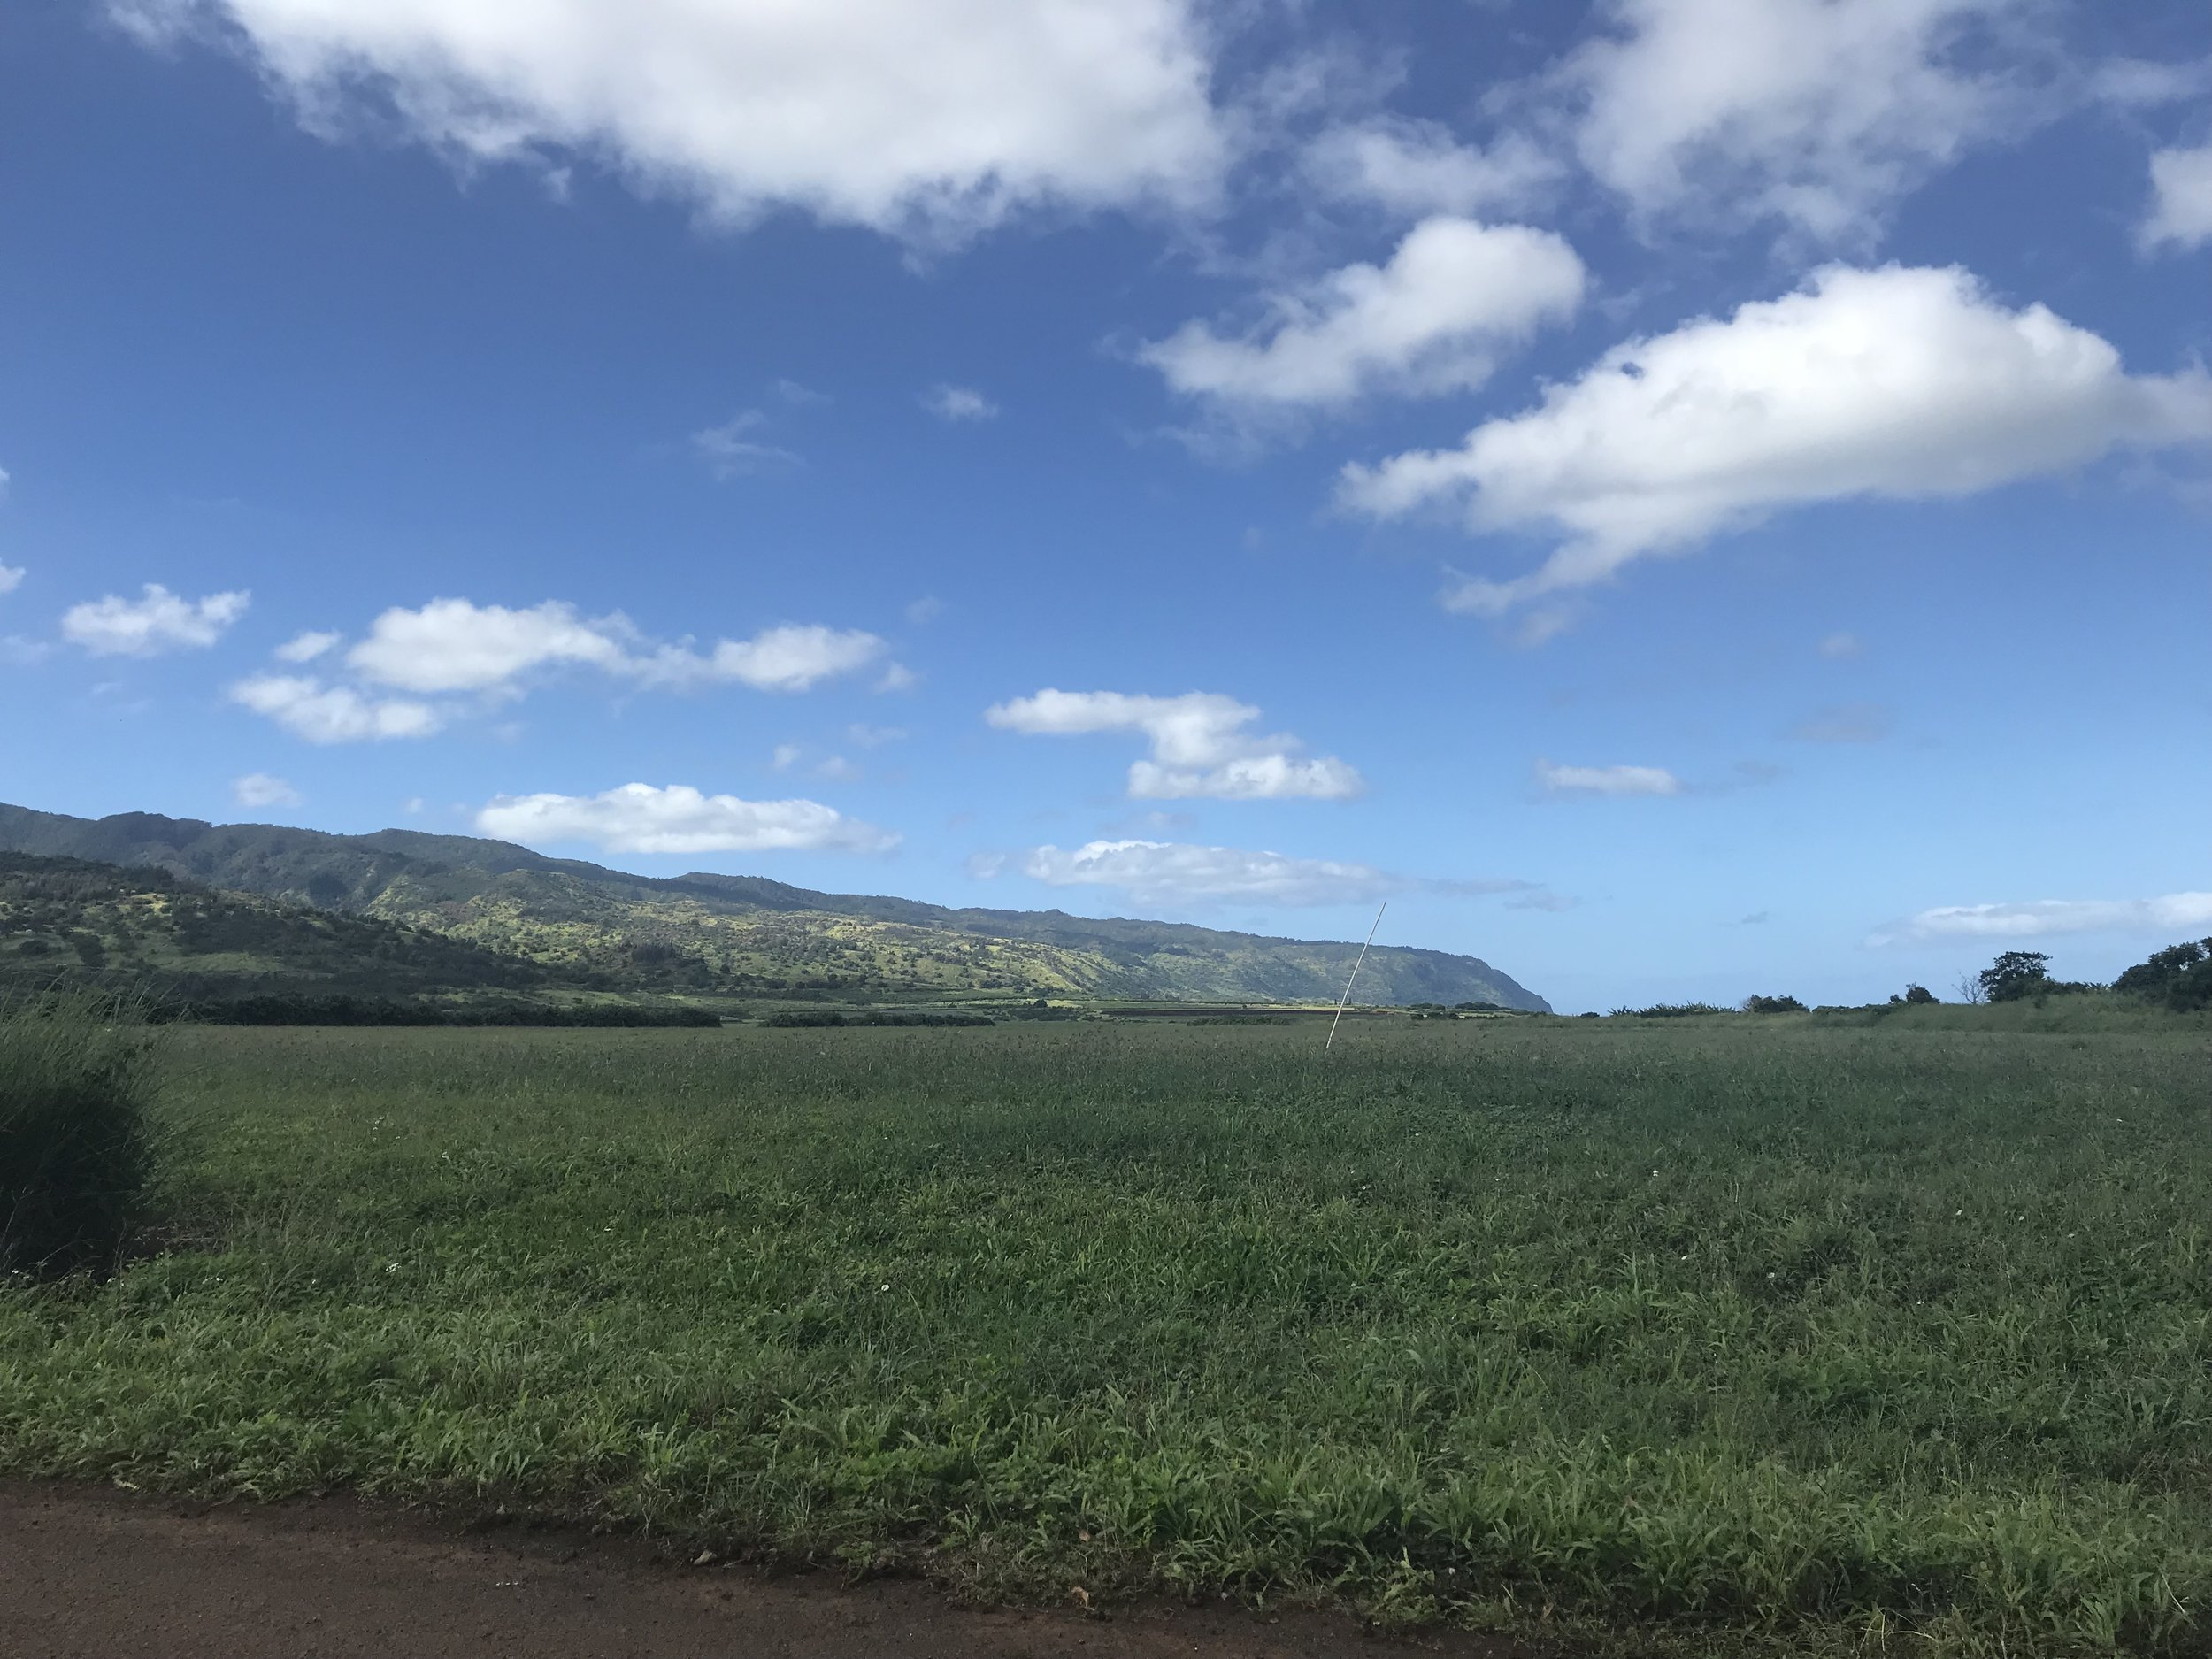 View of the North Shore from Dupont Pioneer in Waialua.